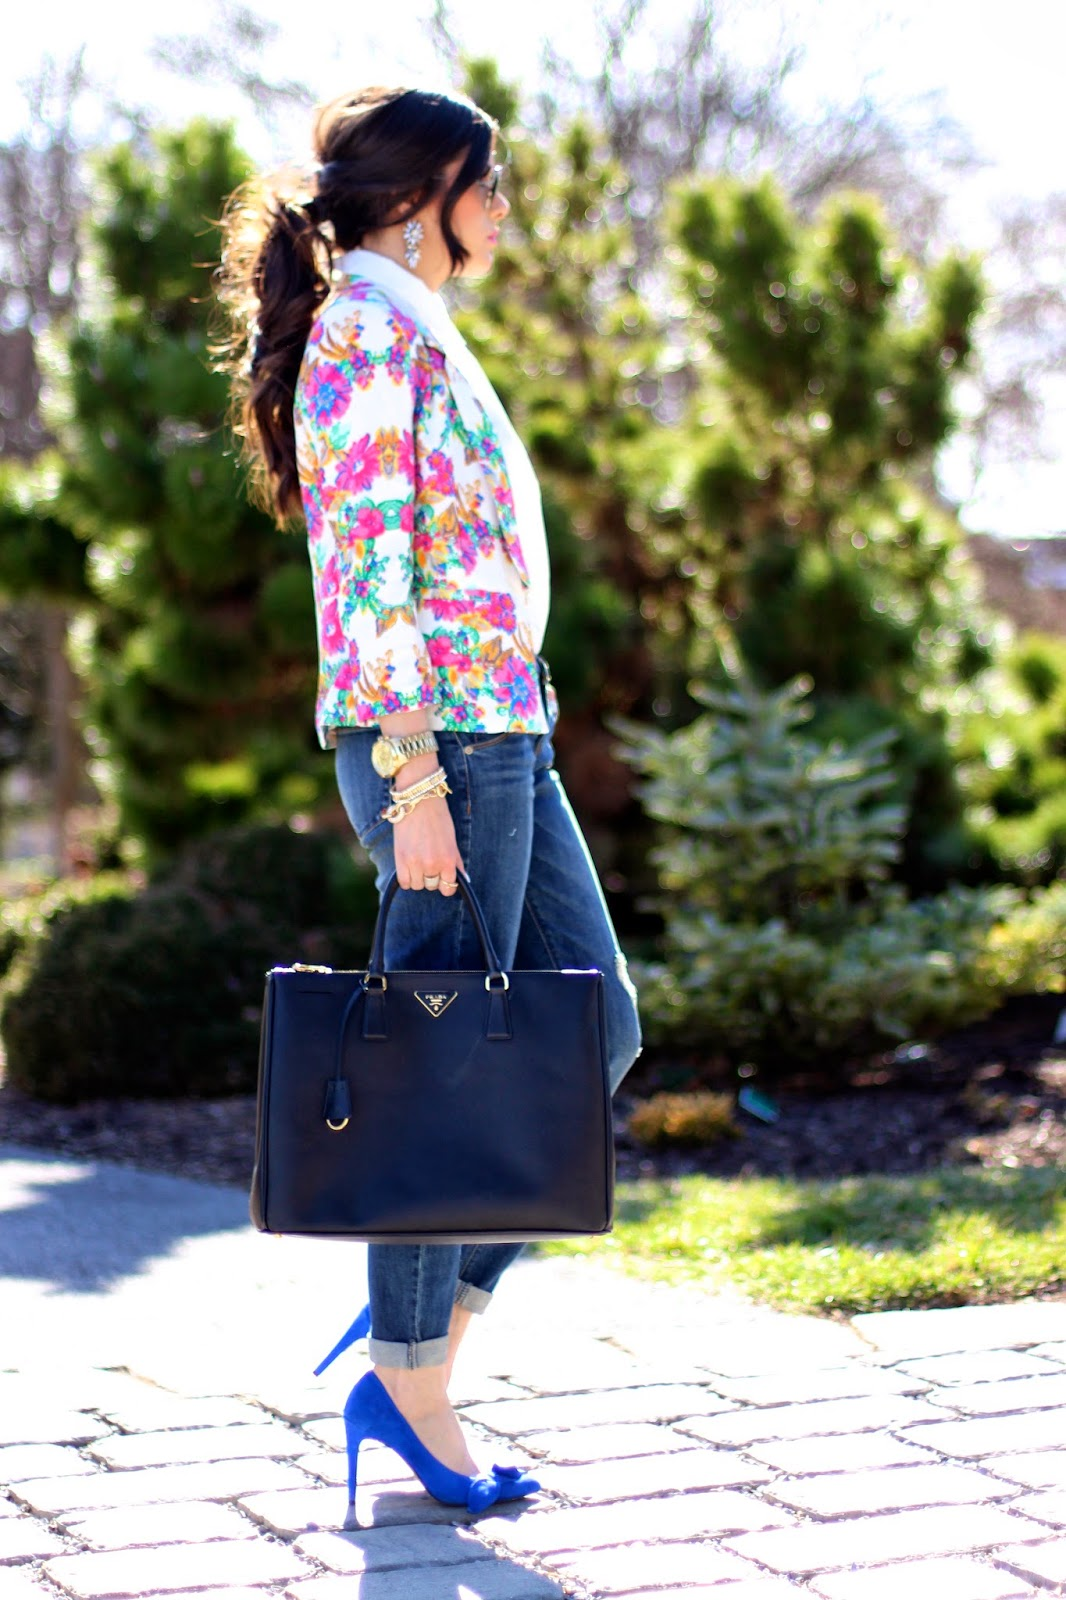 www.TheSweetestThingBlog.com, Emily Ann Gemma, Messy Ponytail, floral Blazer, Masons Boutique on Joyce, Boyfriend jeans, dark denim boyfriend jeans, ripped boyfriend jeans, Dittos brand boyfriend jeans, prada 54mm retro sunglasses, prada executive tote, black large prada bag, indigo little white top, michael kors runway watch, spring fashion, pinterest spring fashion 2014, spring trends 2014, candy yum yum, fashion blogger, style blogger, bauble bar earrings, statement earrings, firecracker drops